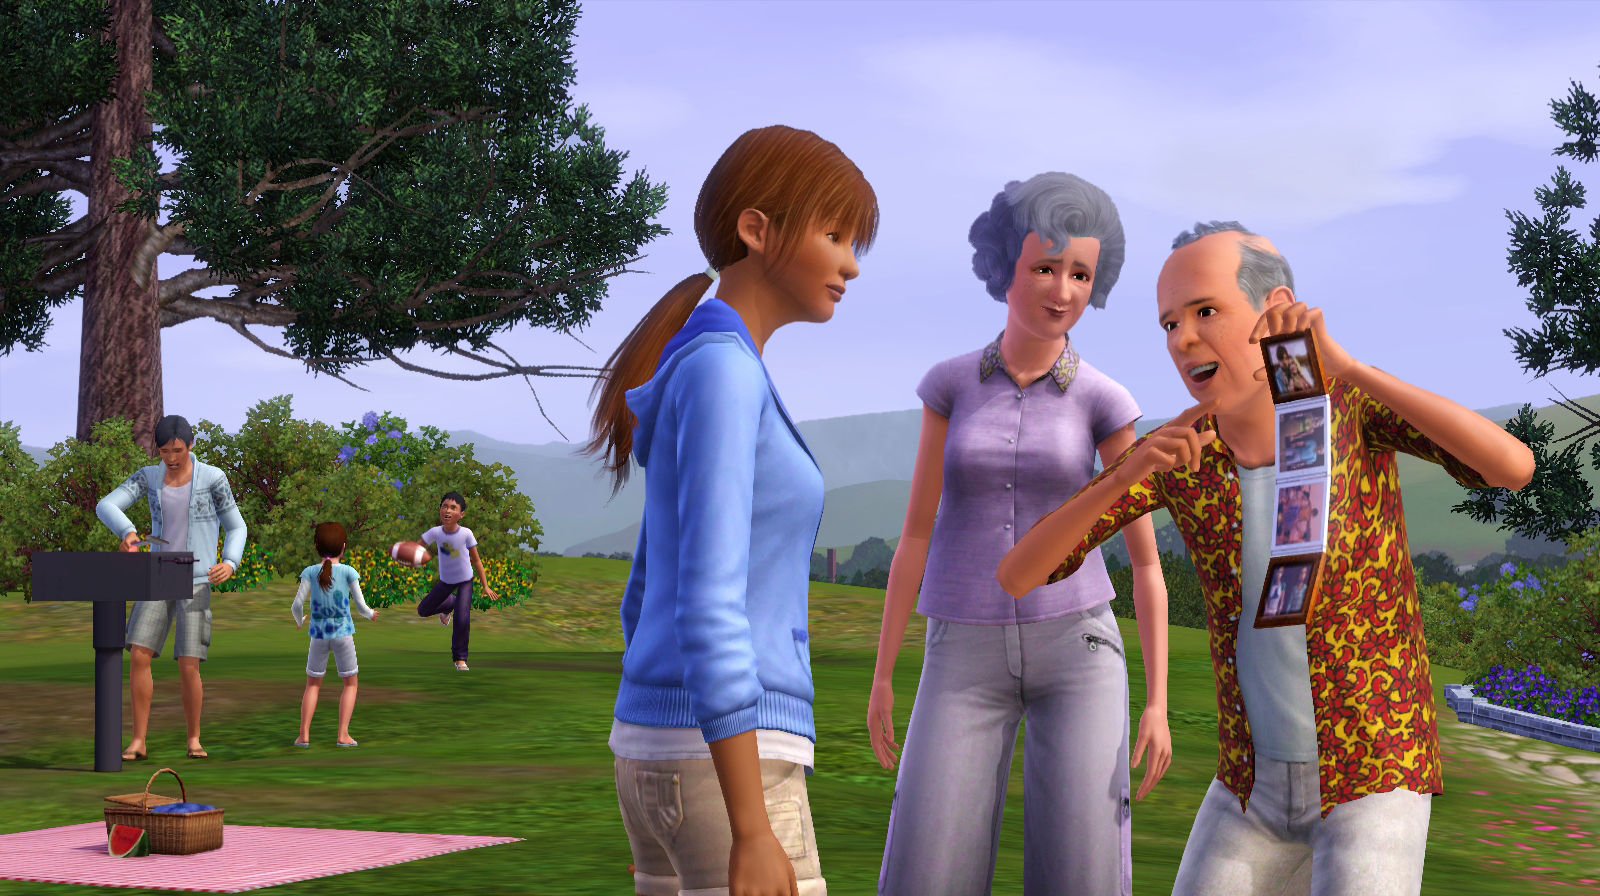 Sims 3 generations dating